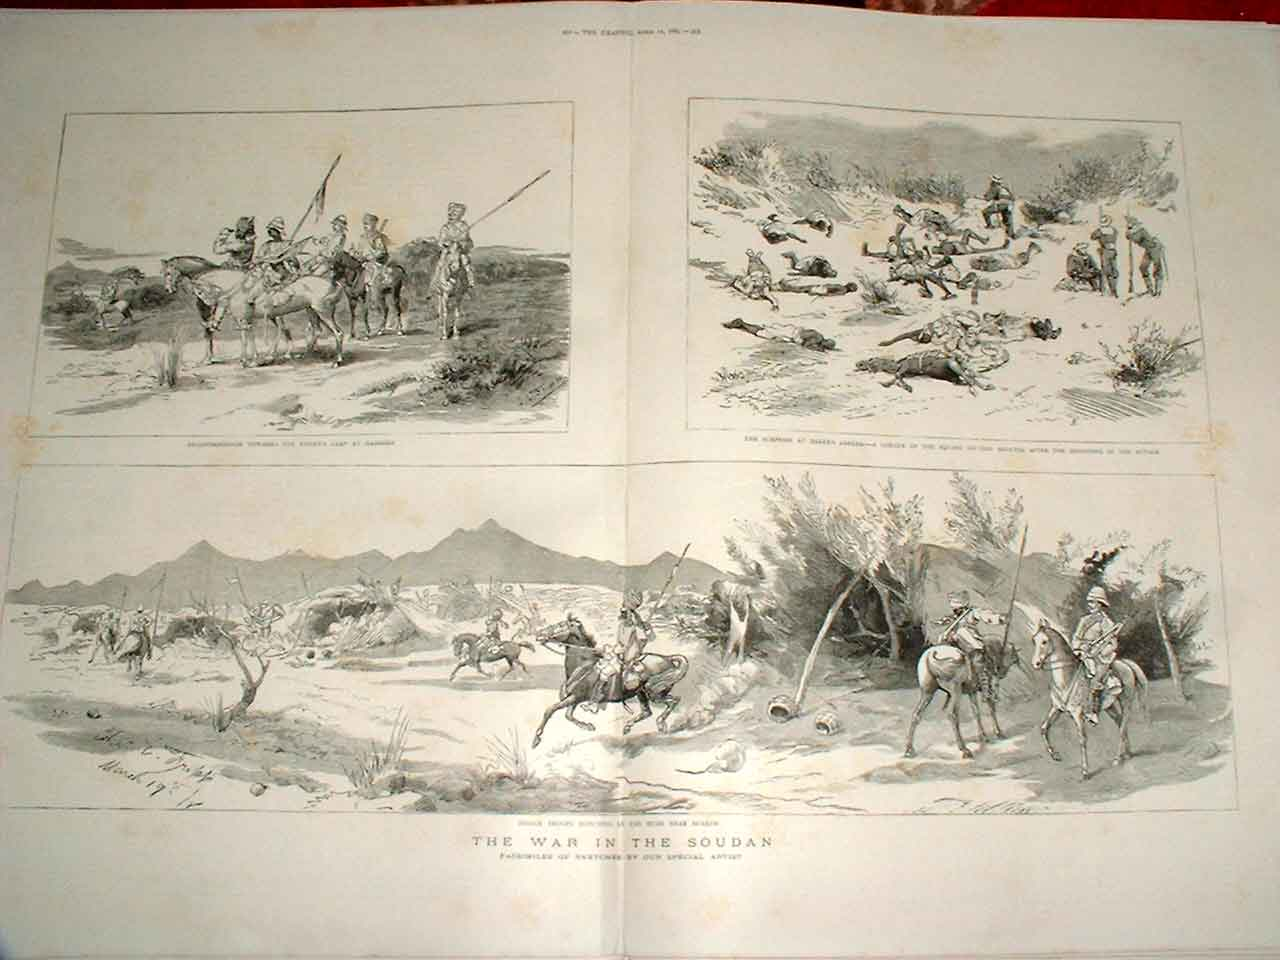 Print Surprise Bakers Zereba 1885 Soudan War 51Tbbb0 Old Original